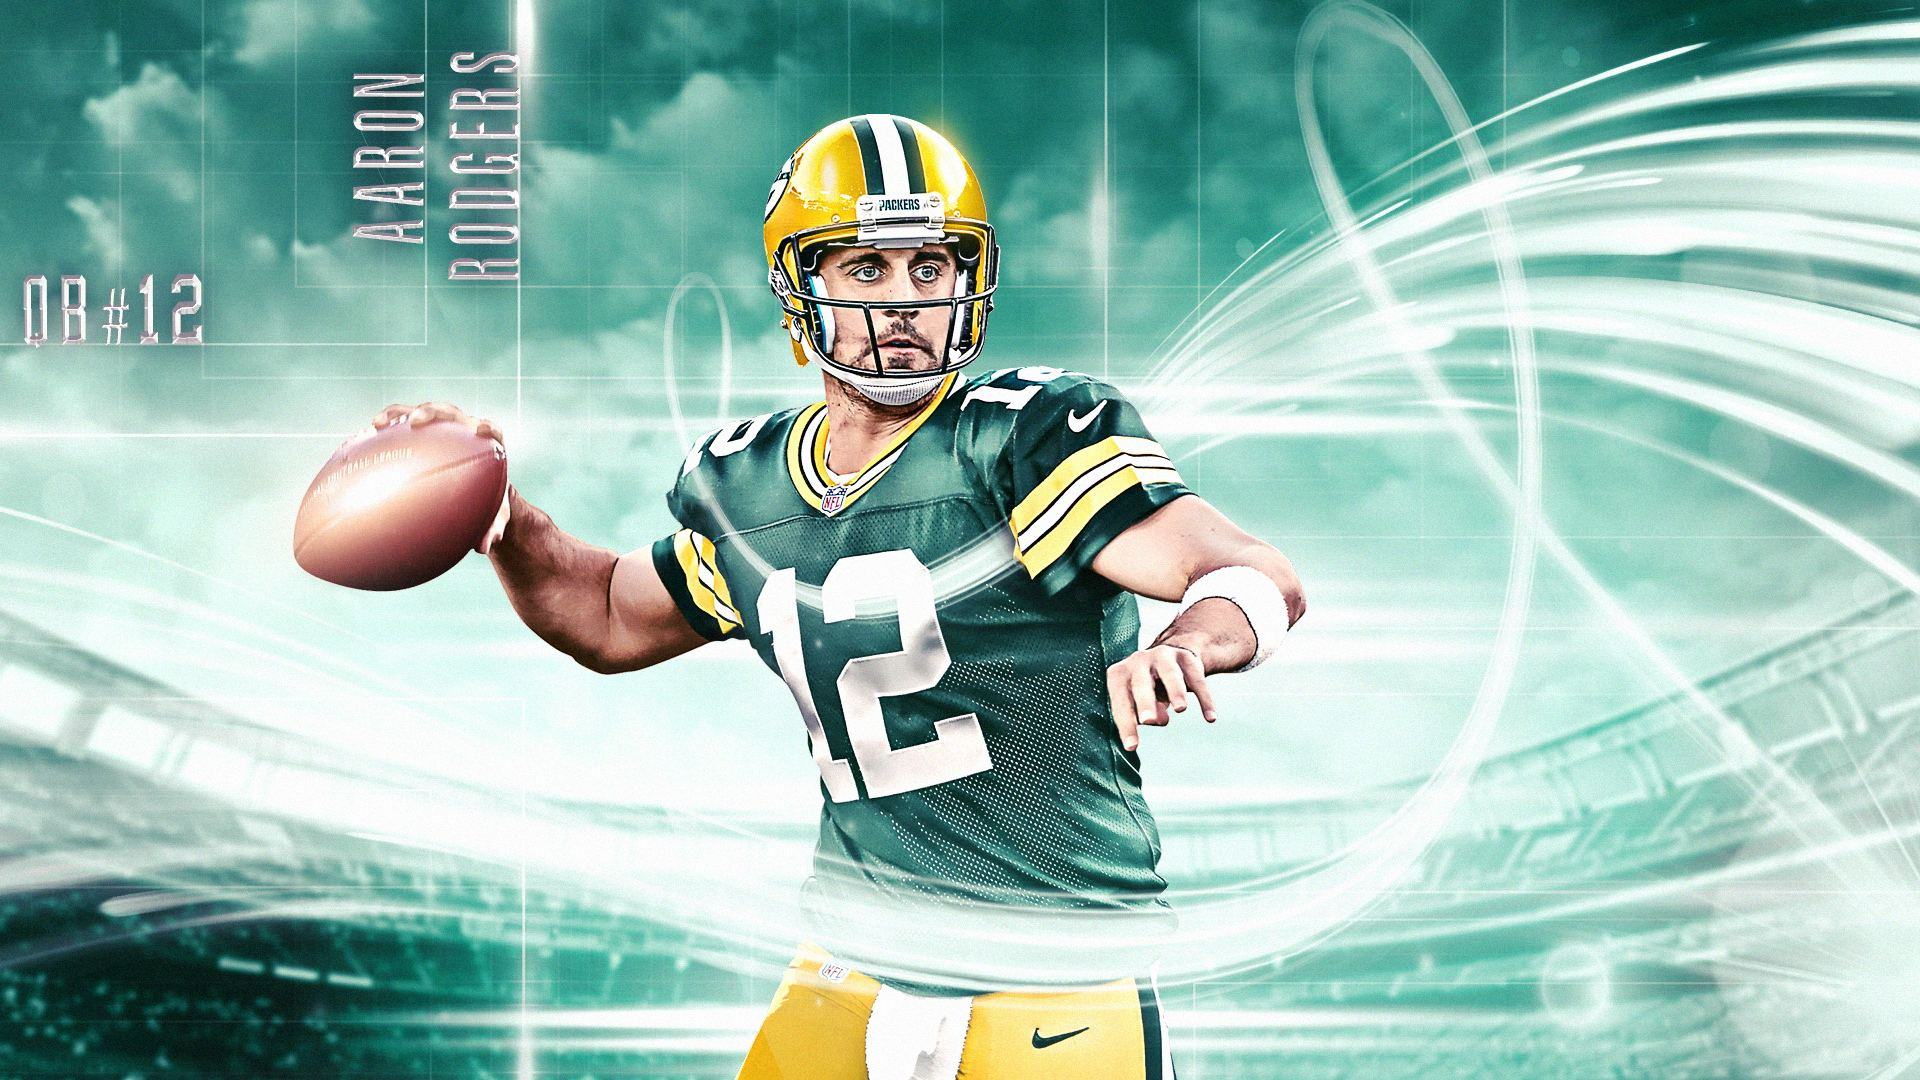 Aaron Rodgers free HD Wallpapers 1920x1080